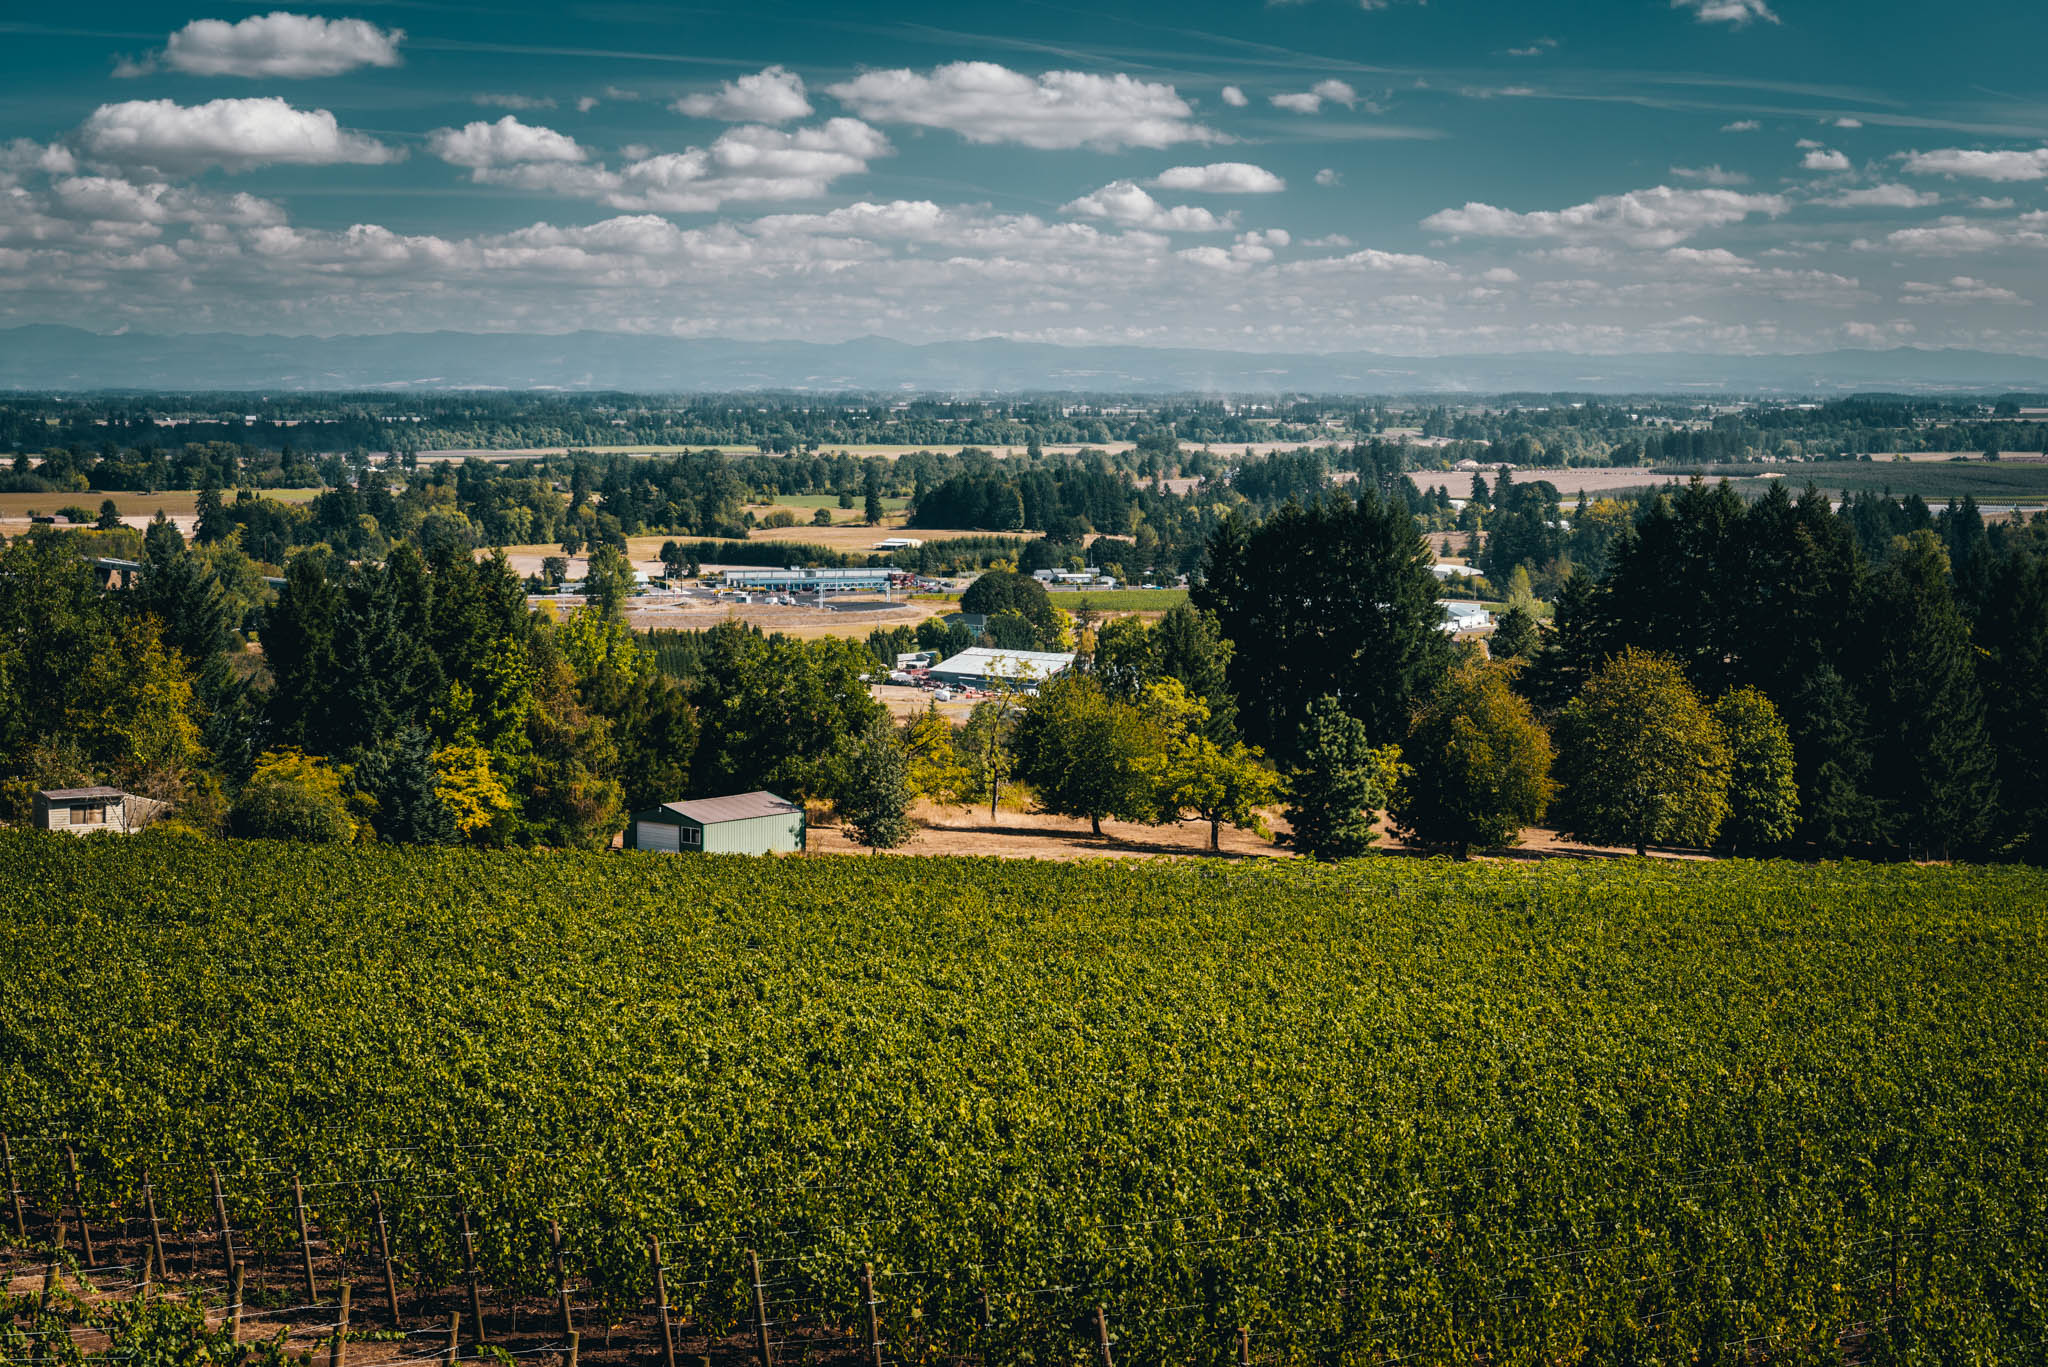 US : Oregon : The view at Domaine Roy in Dundee